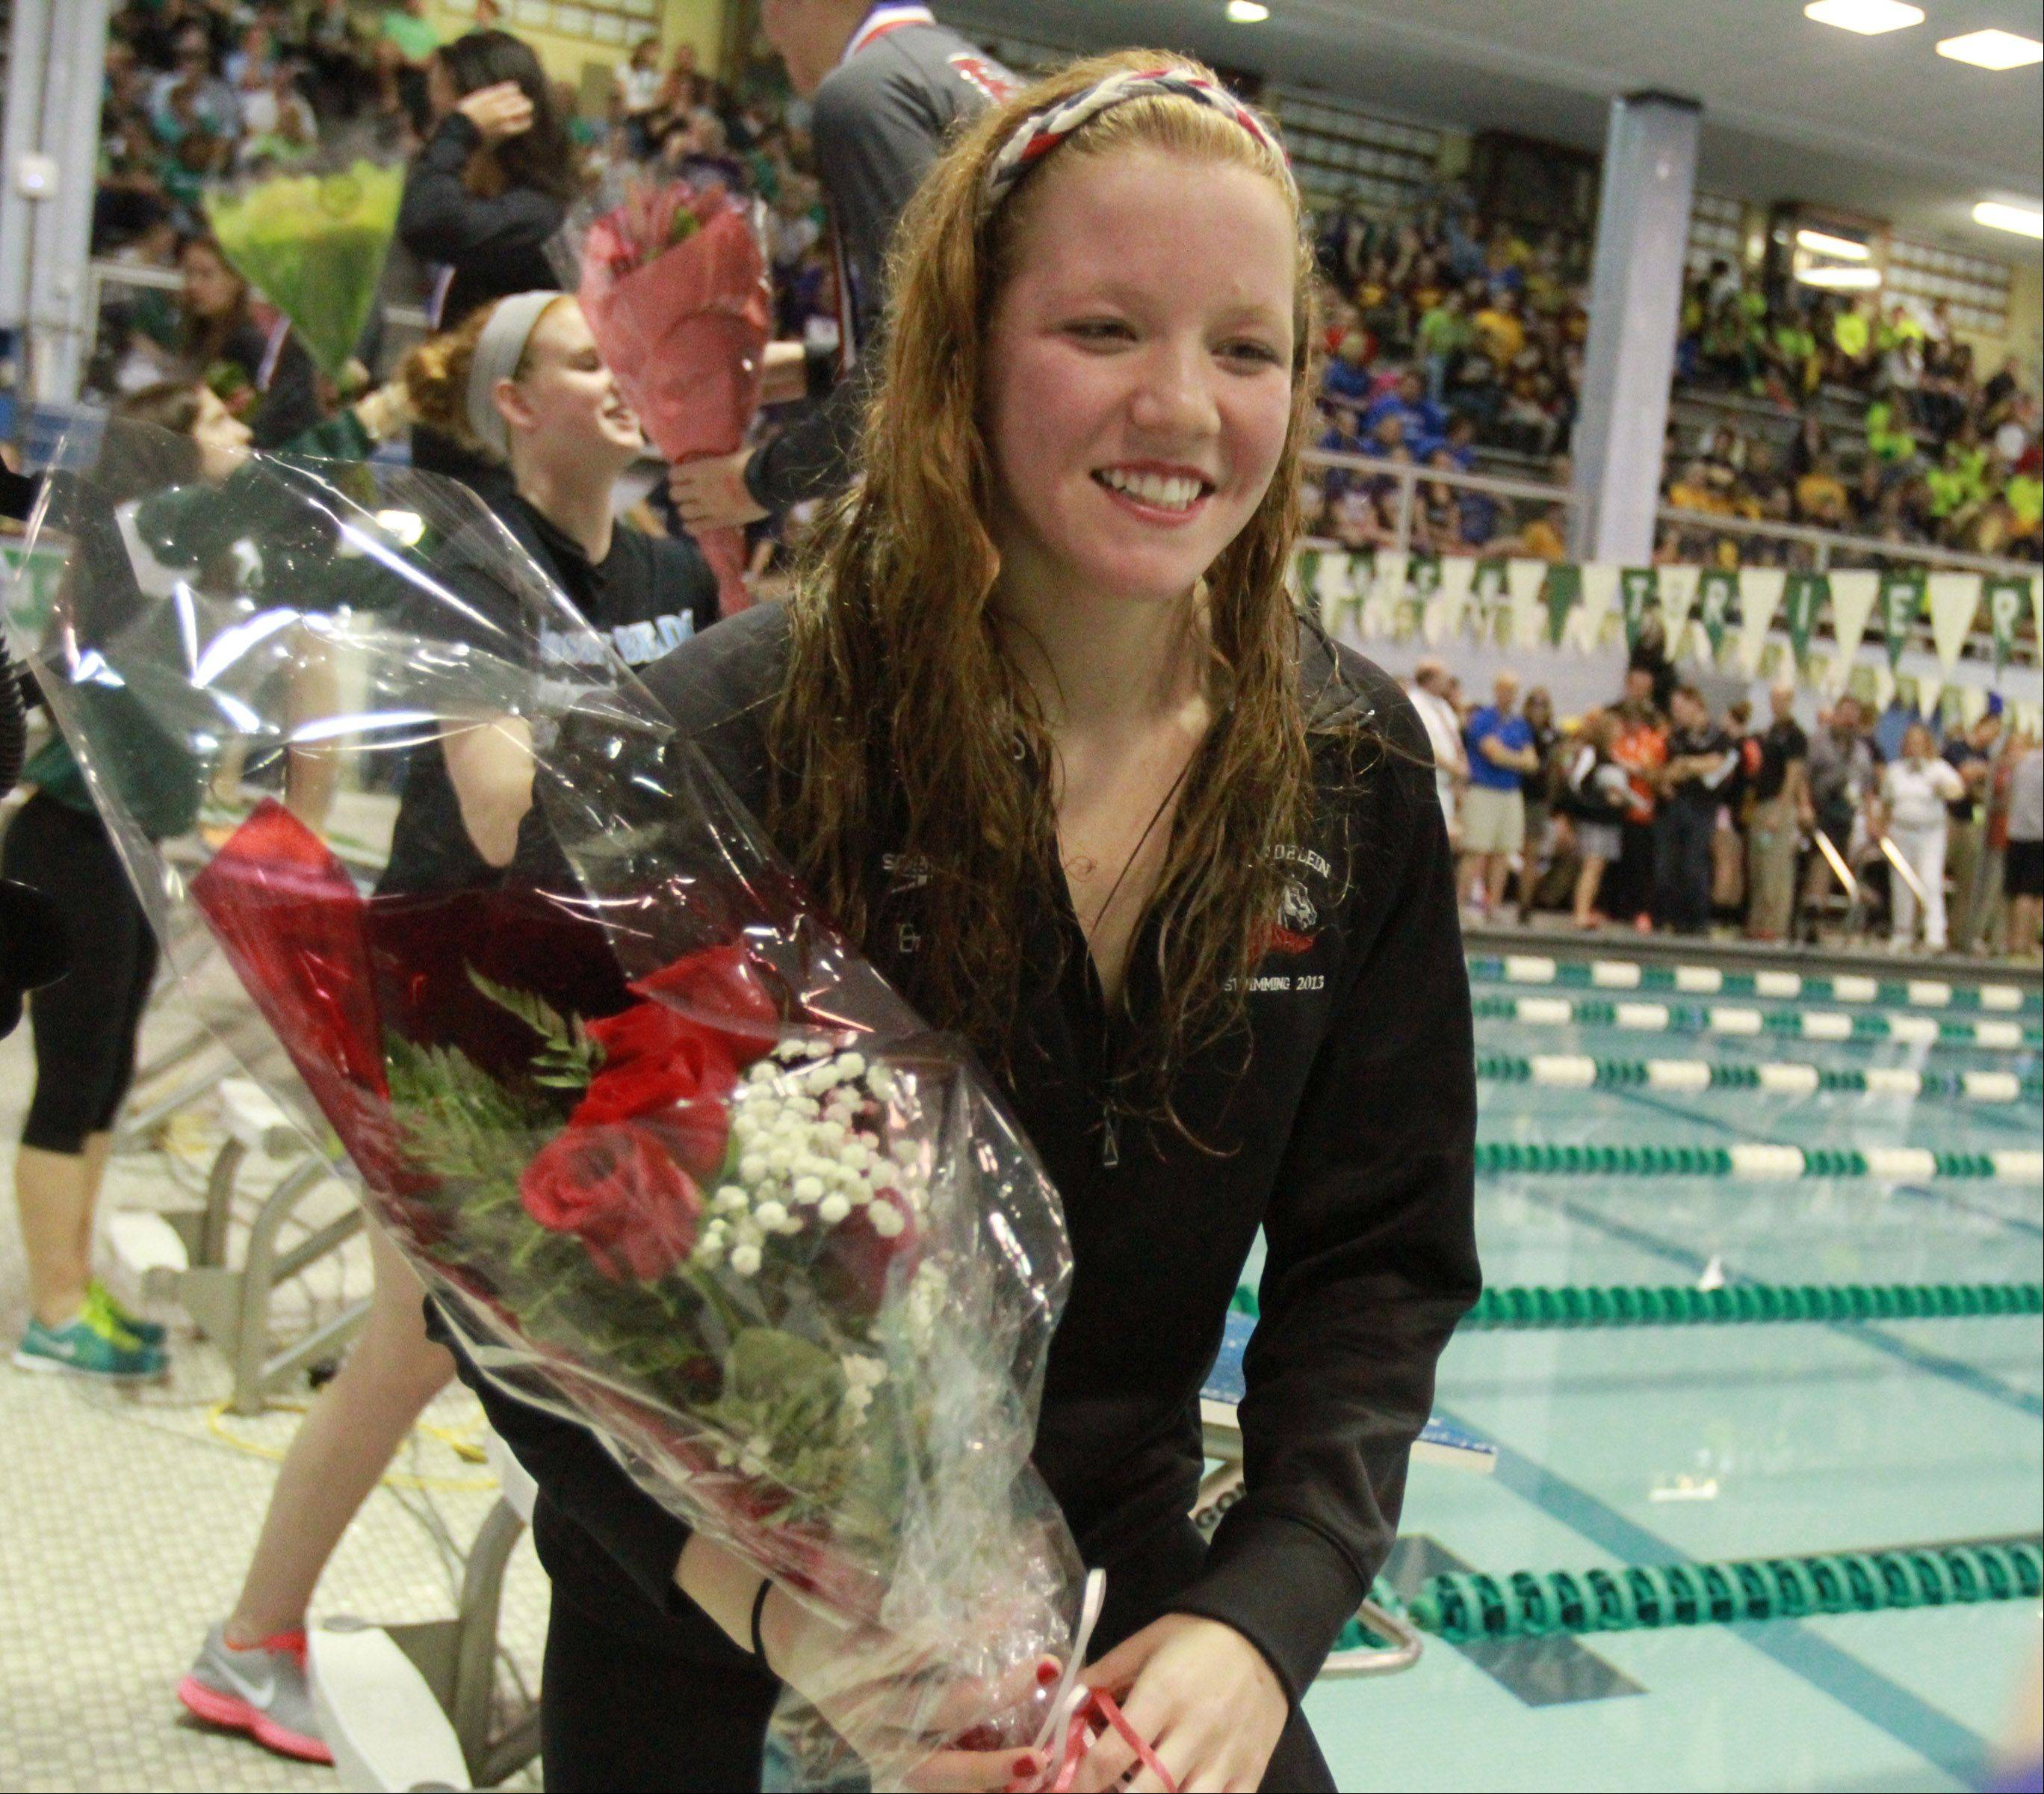 Mundelein's Erin Falconer placed 2nd in the 100 yard at the girls state swimming finals on Saturday in Winnetka.